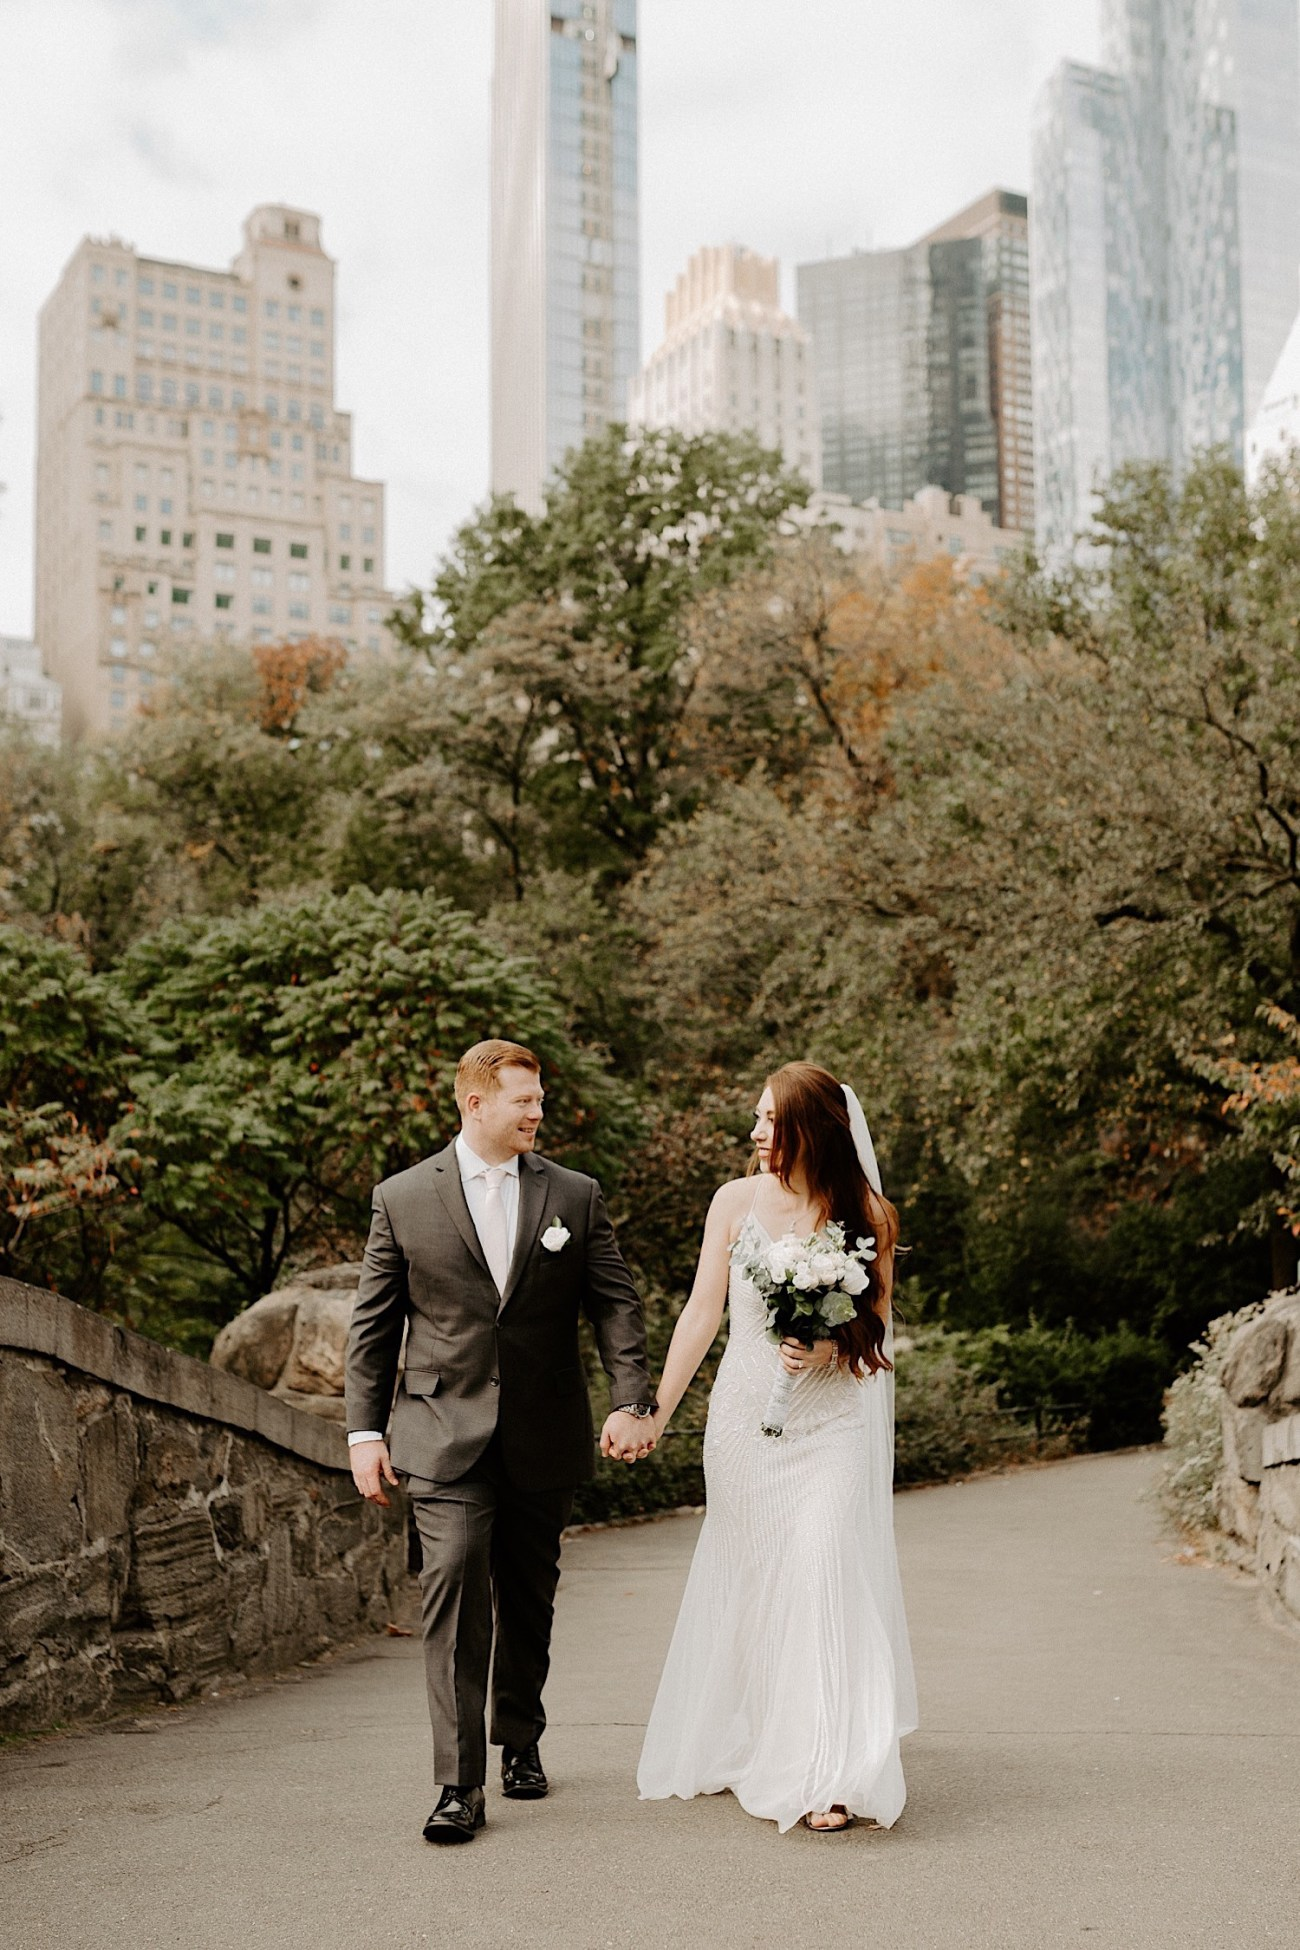 Central Park Wedding Photos Central Park Elopement NYC Wedding Photographer 04